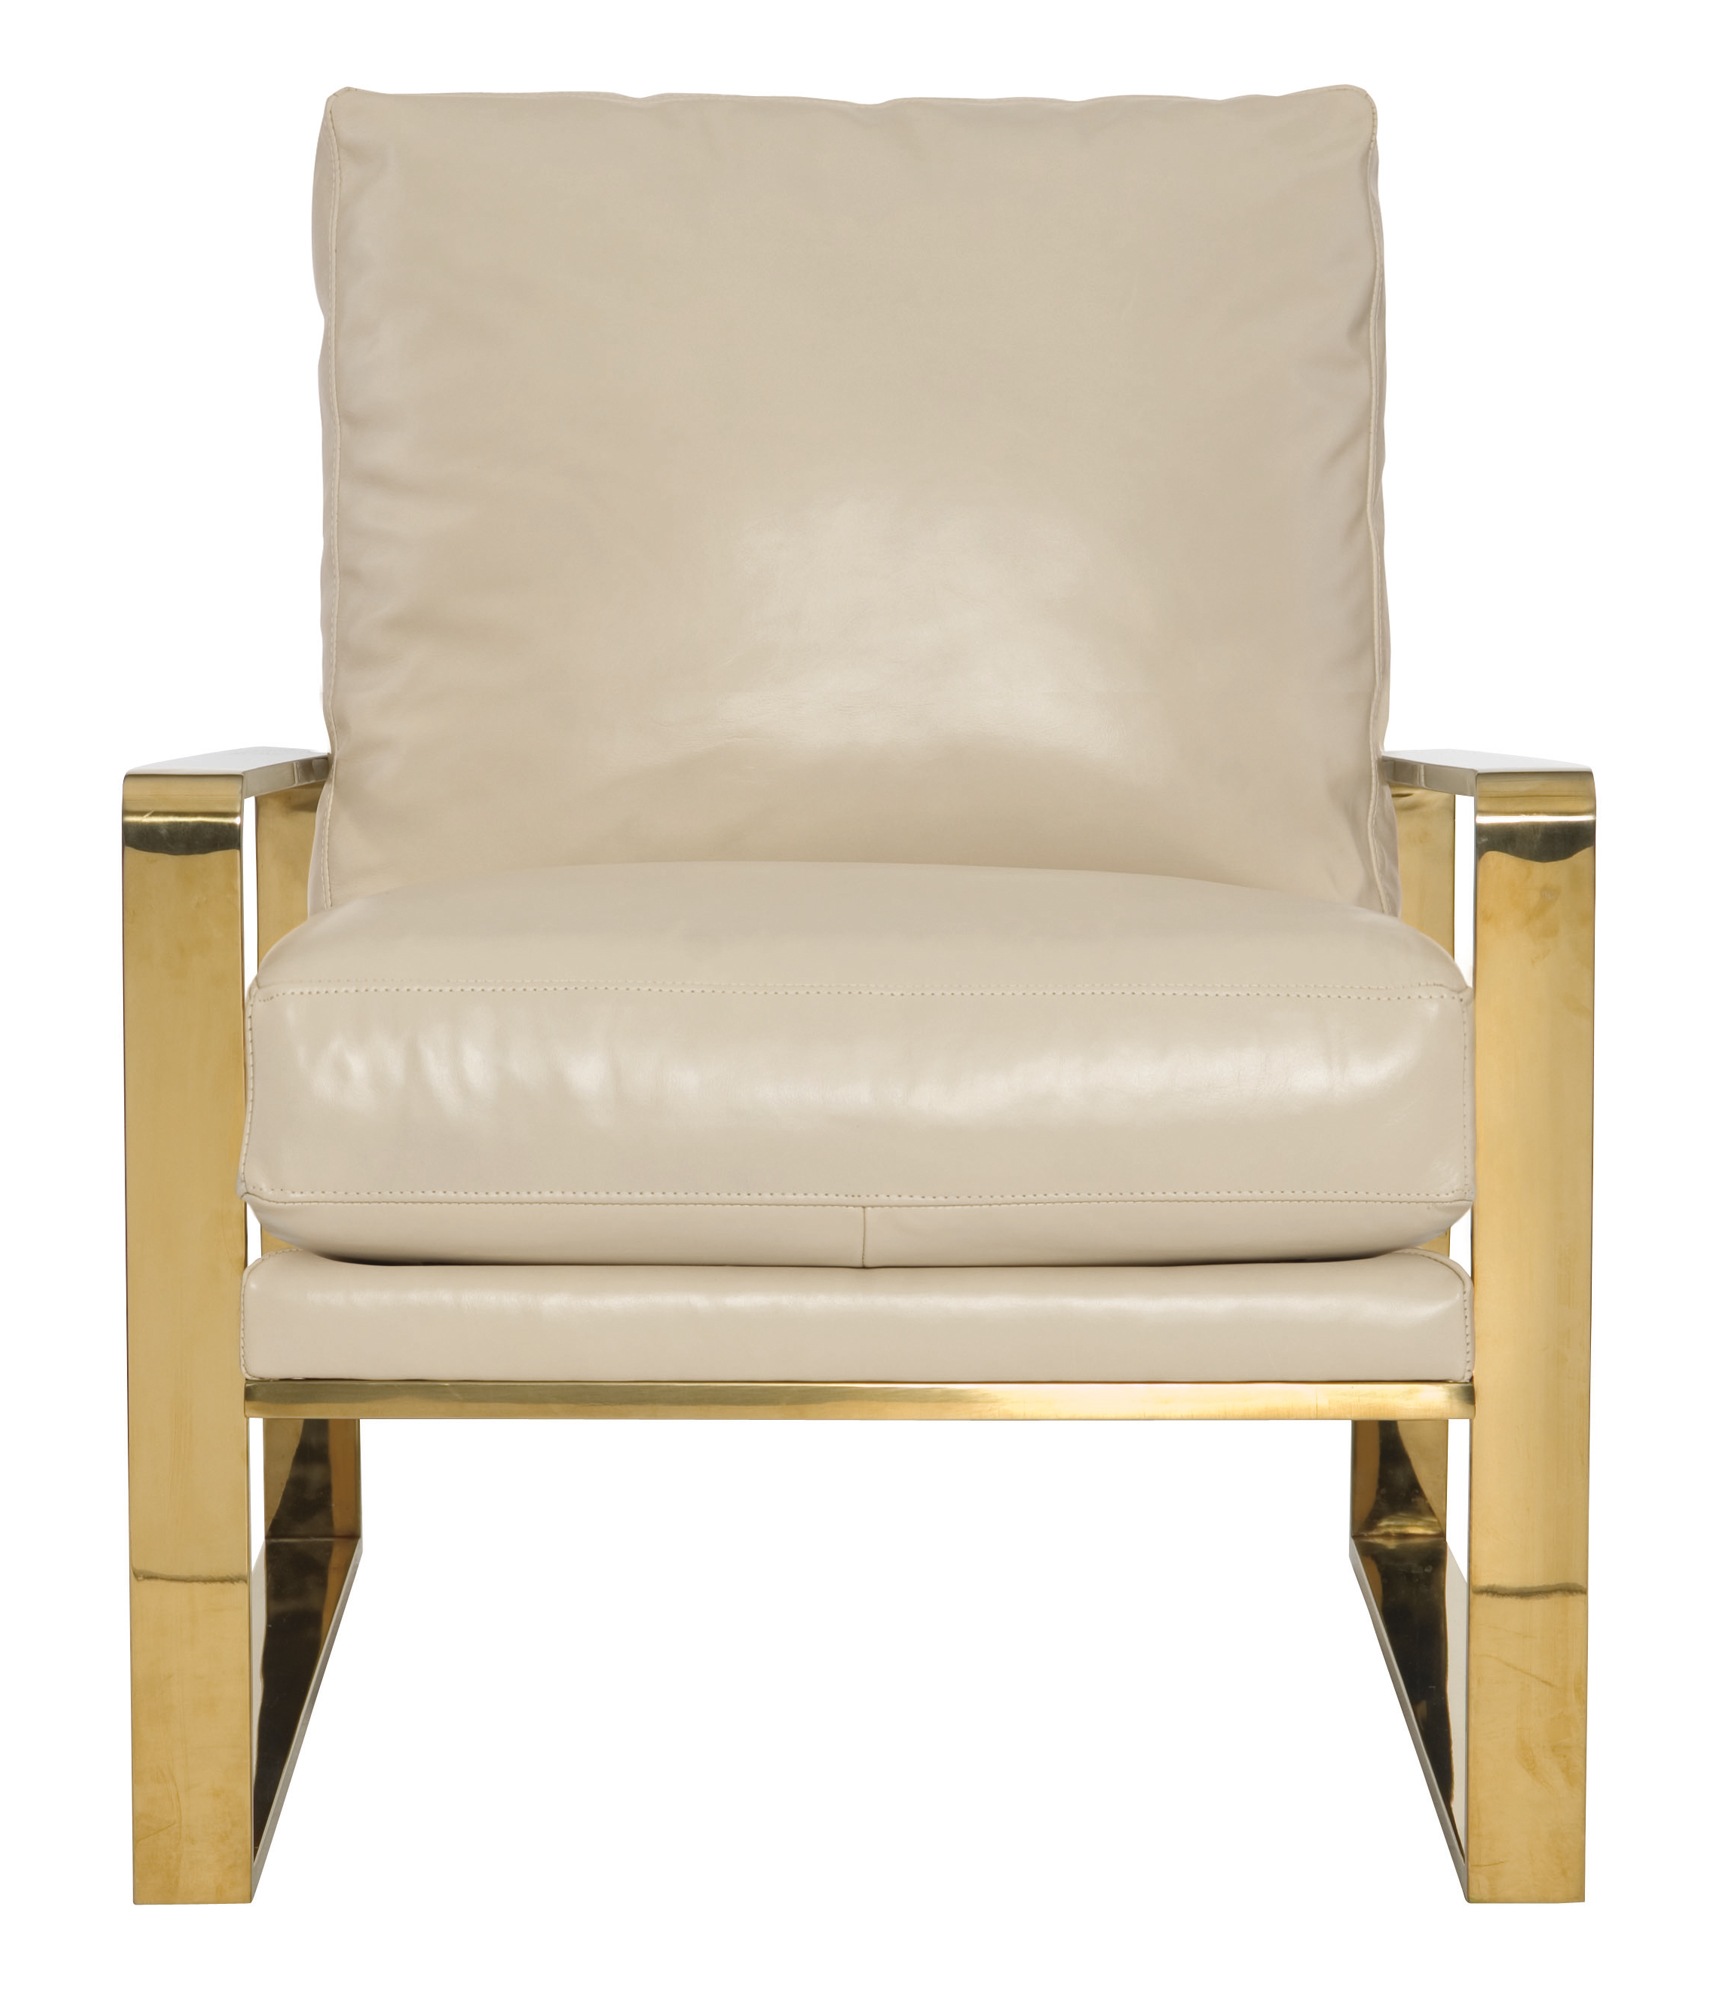 Bernhardt Leather Chair Chair Bernhardt